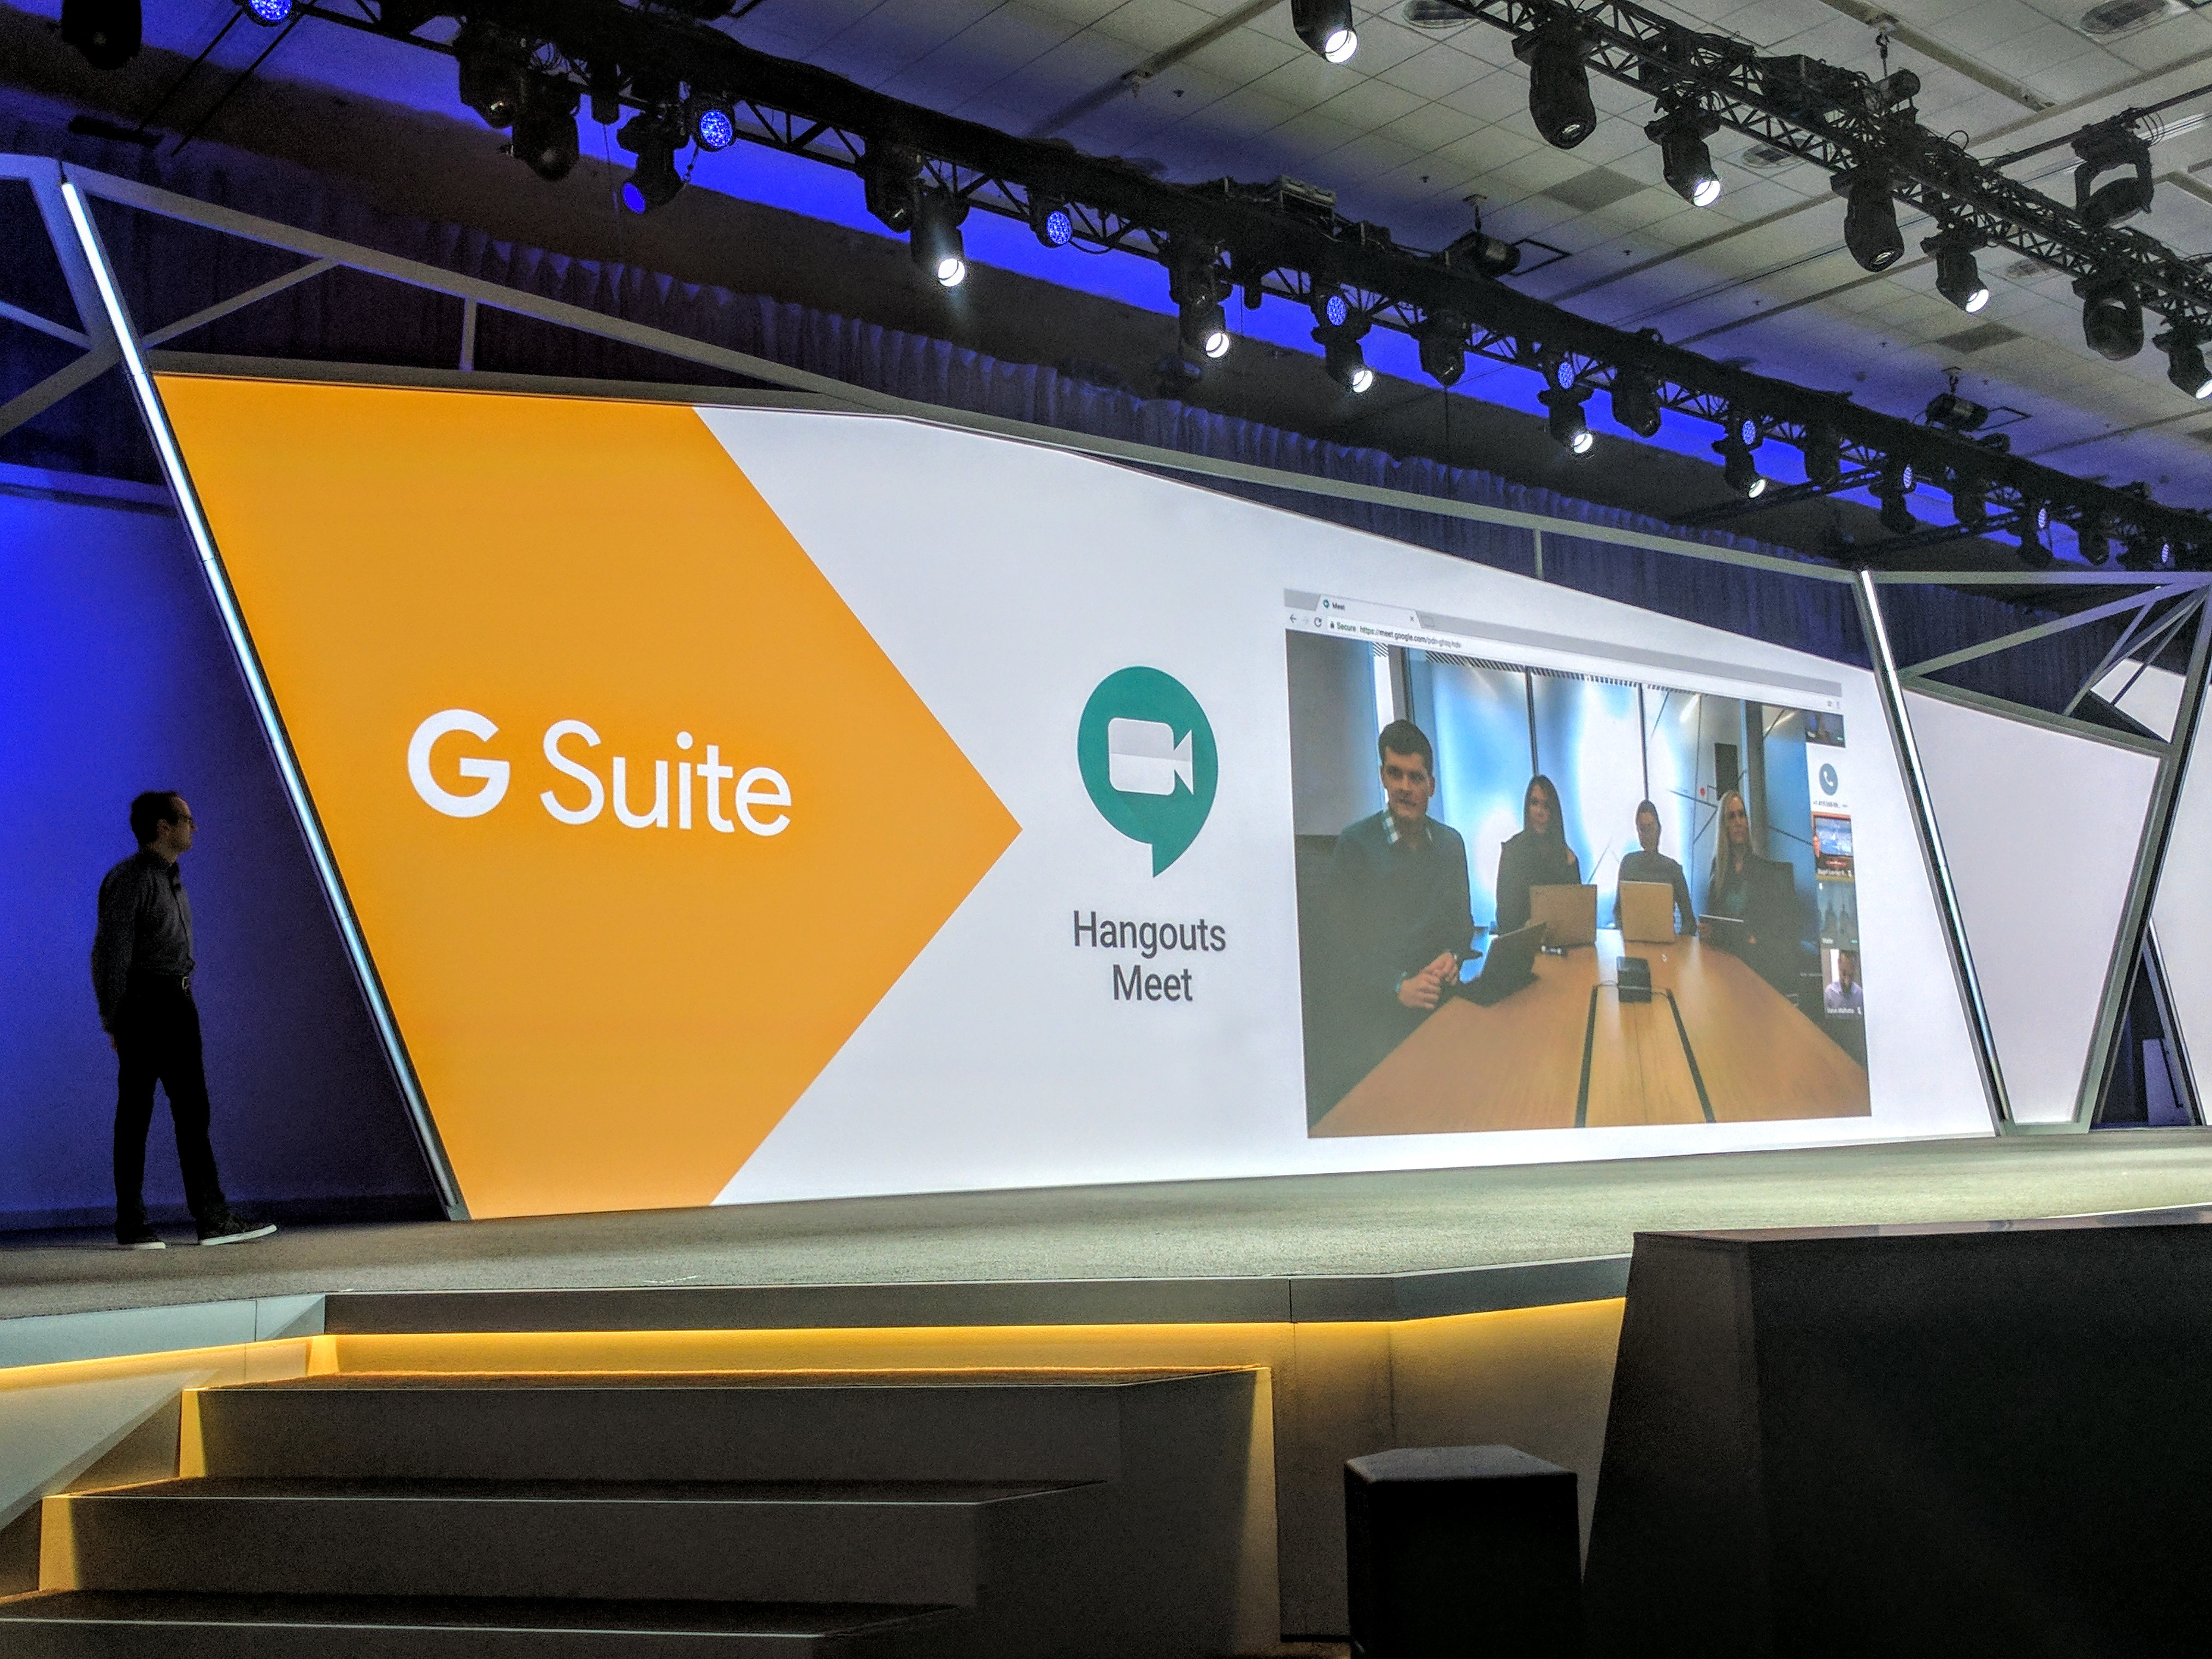 Google starts migrating all G Suite users from Hangouts to Meet